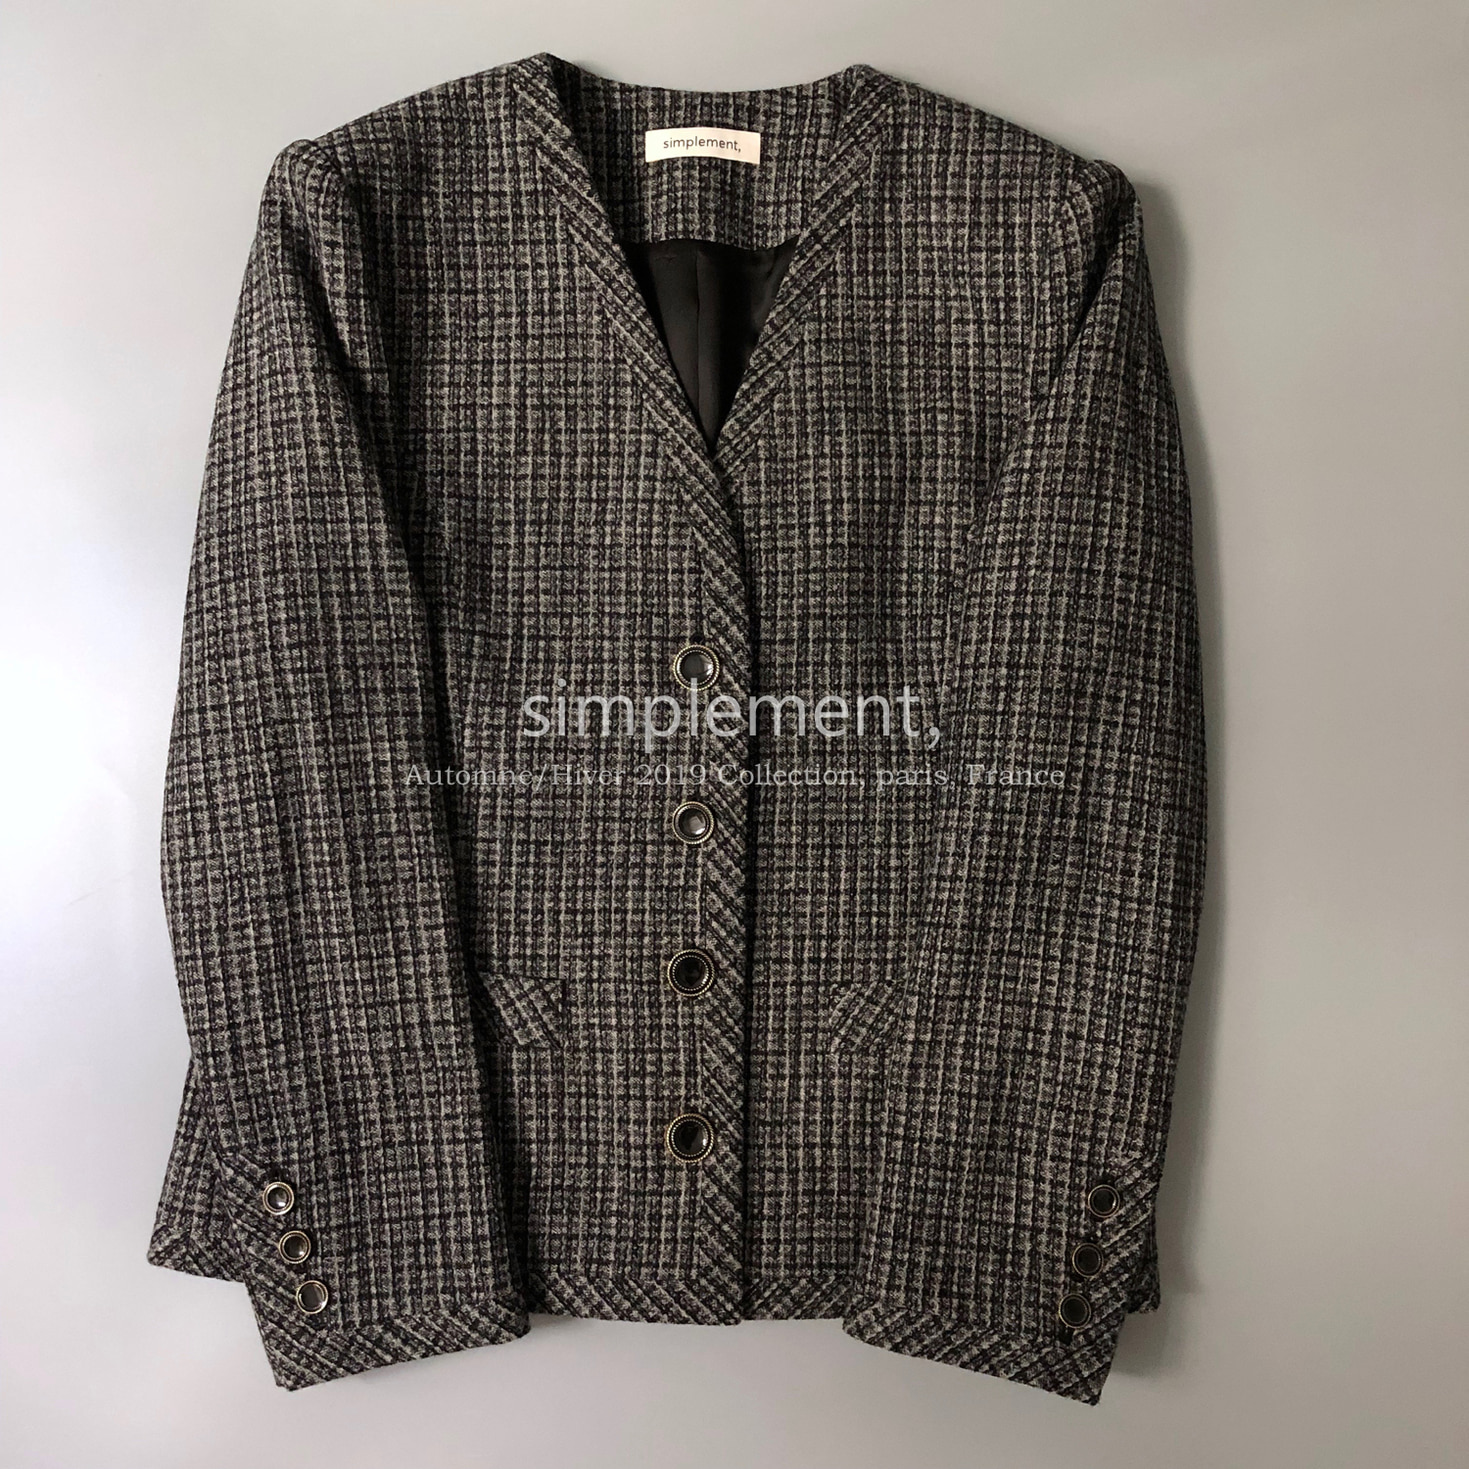 110 Jackie jacket in Gray